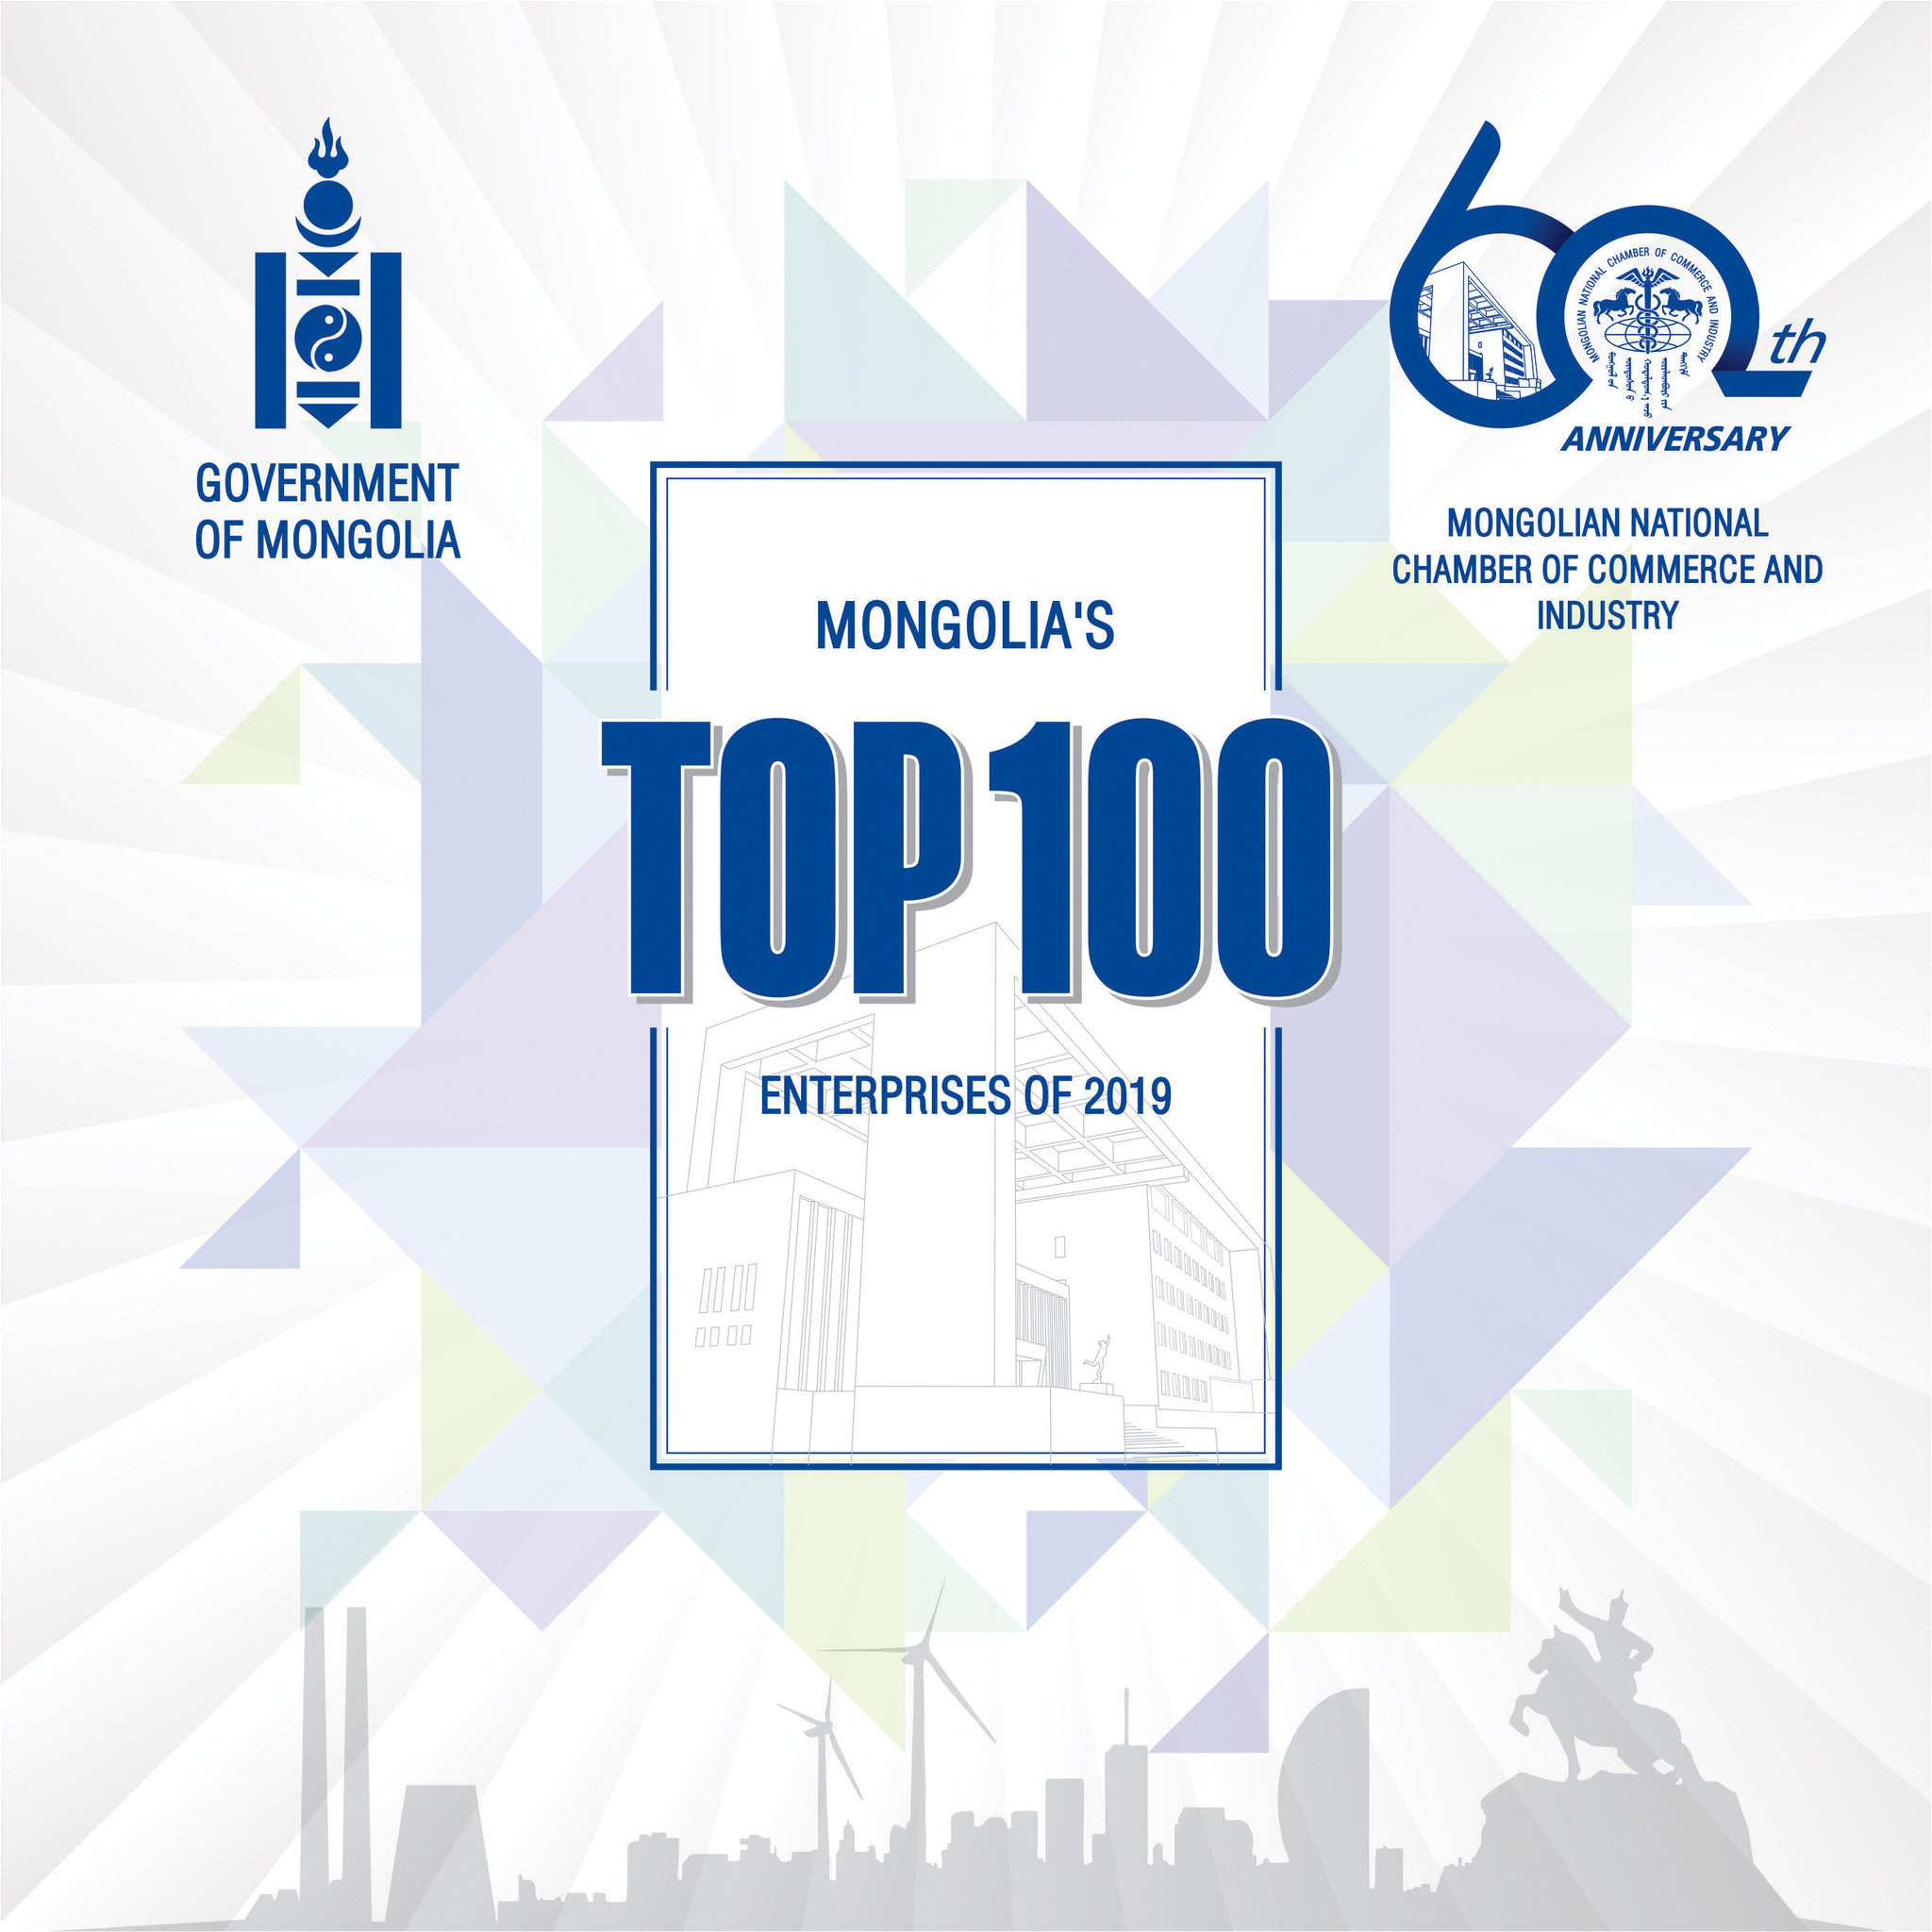 WE ARE RECOGNIZED AS ONE OF THE TOP 100 ENTERPRISES OF MONGOLIA